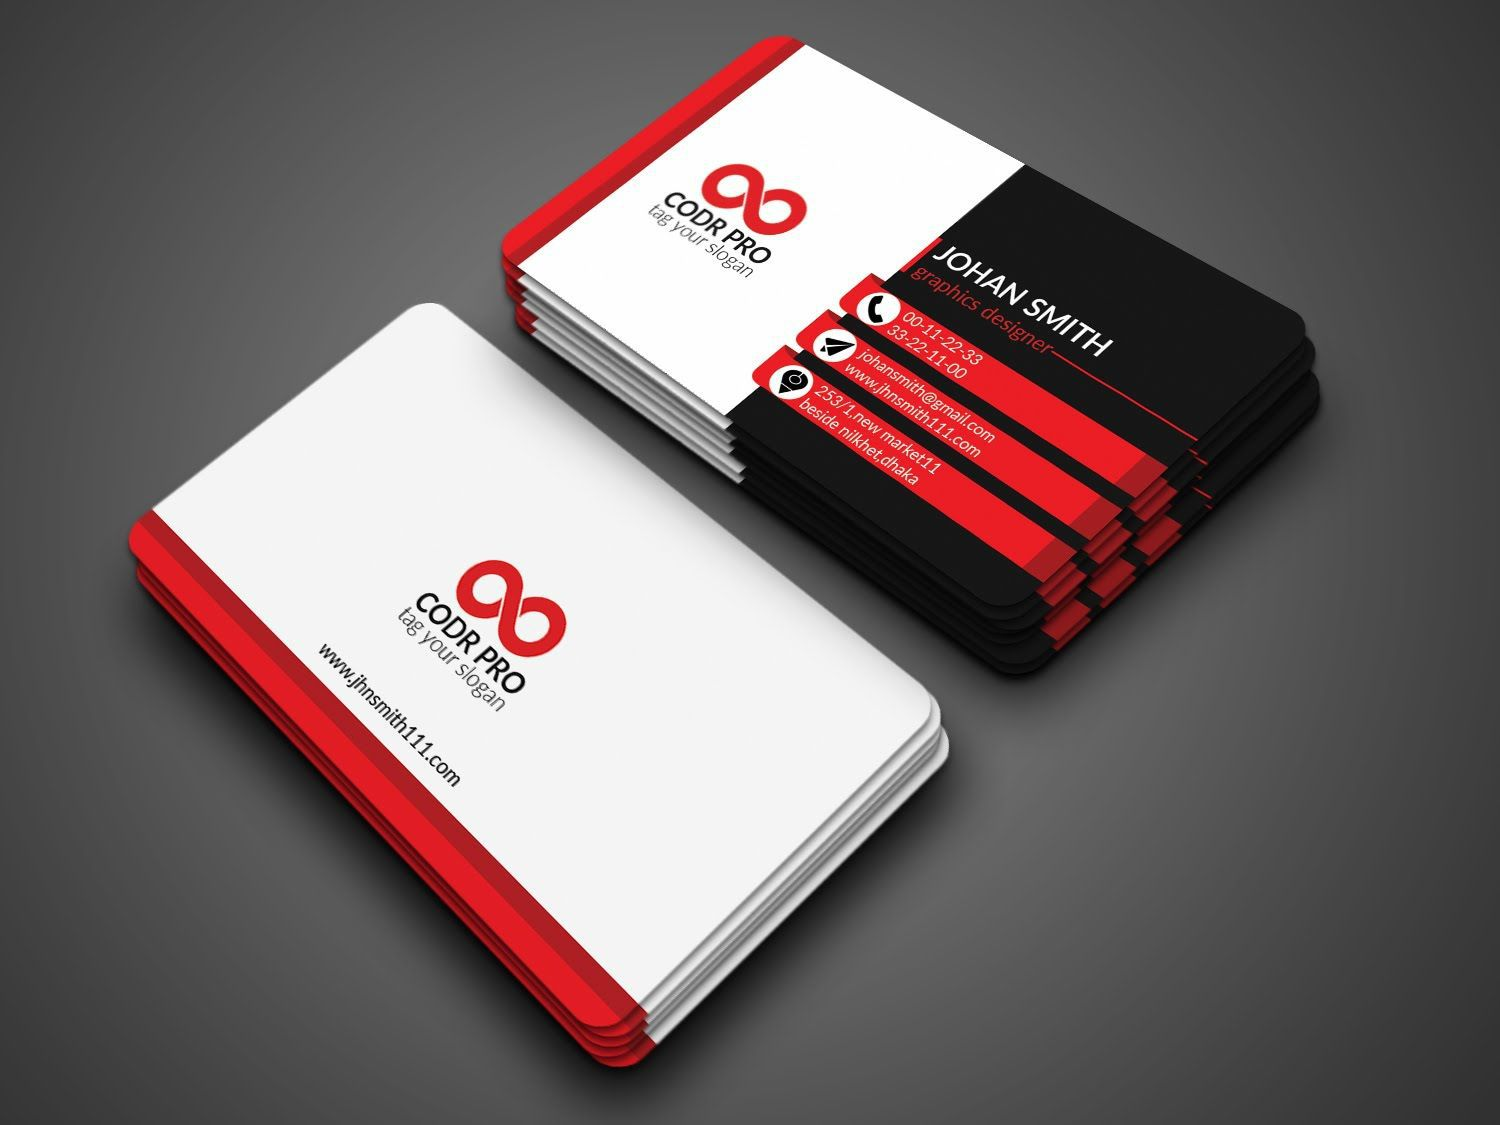 003 Fantastic Psd Busines Card Template Photo  Computer Free With BleedFull